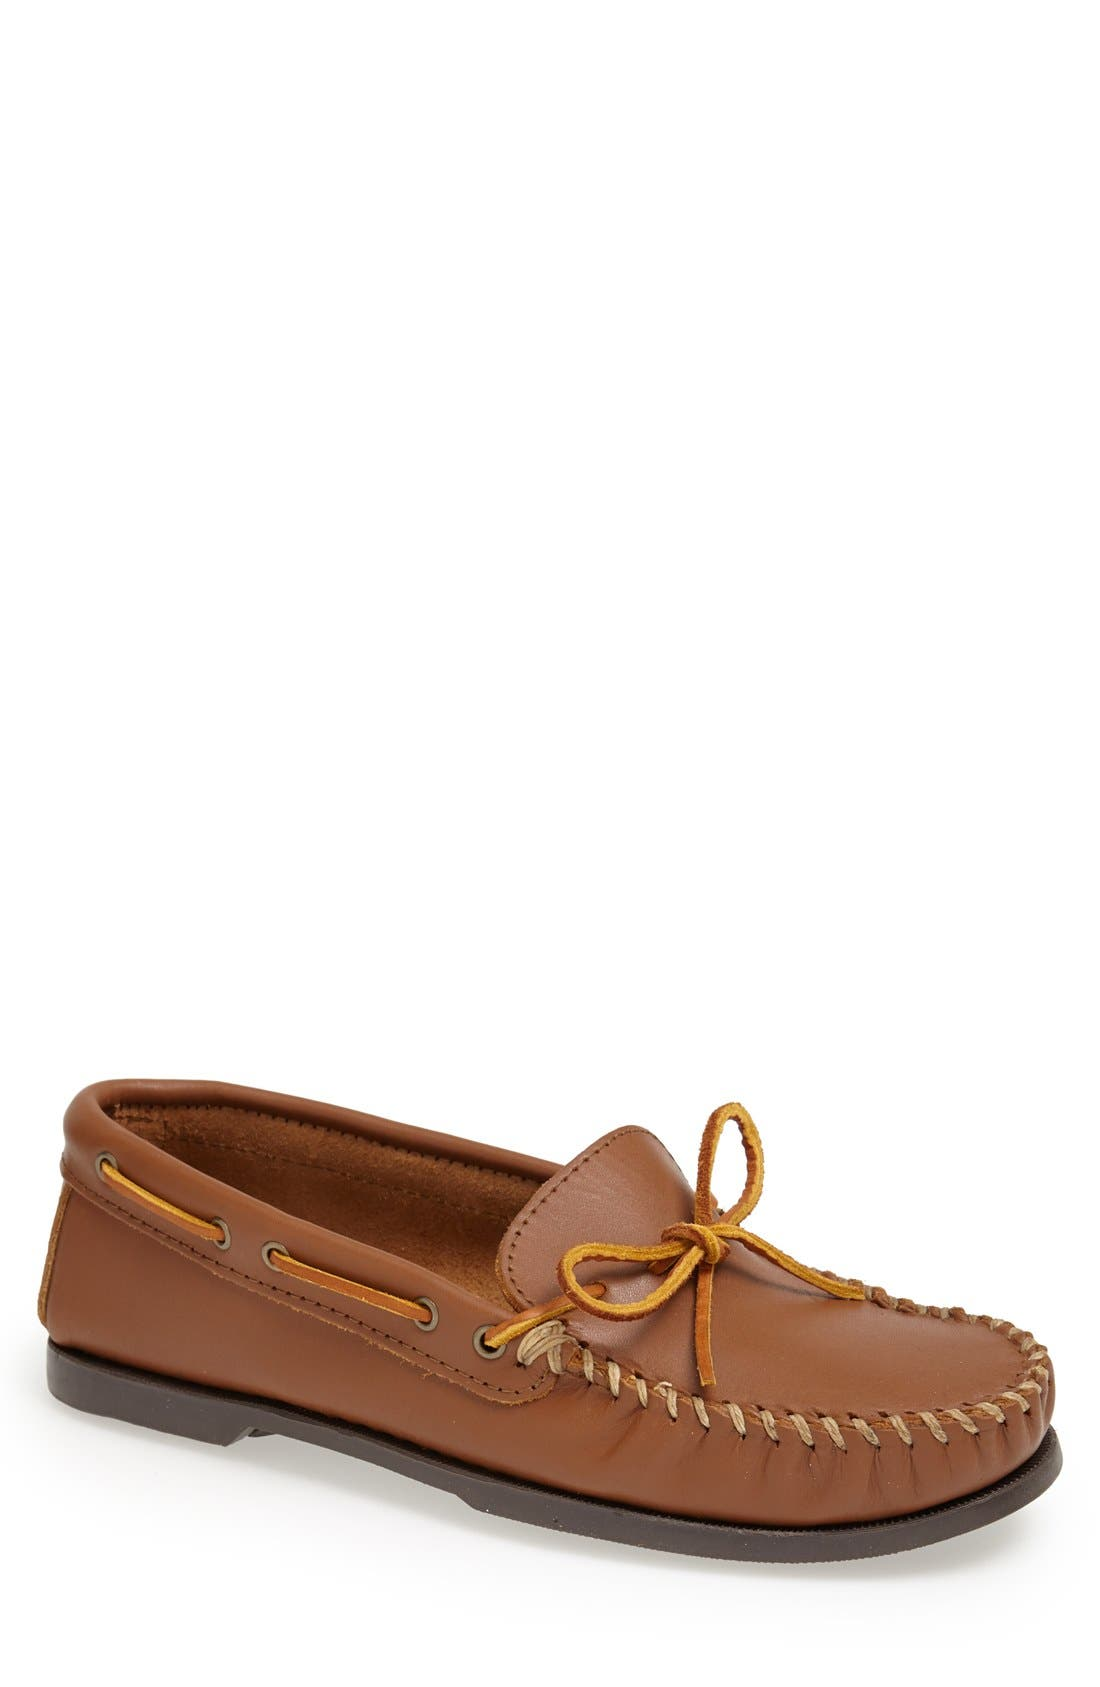 Leather Camp Moccasin,                             Main thumbnail 1, color,                             MAPLE